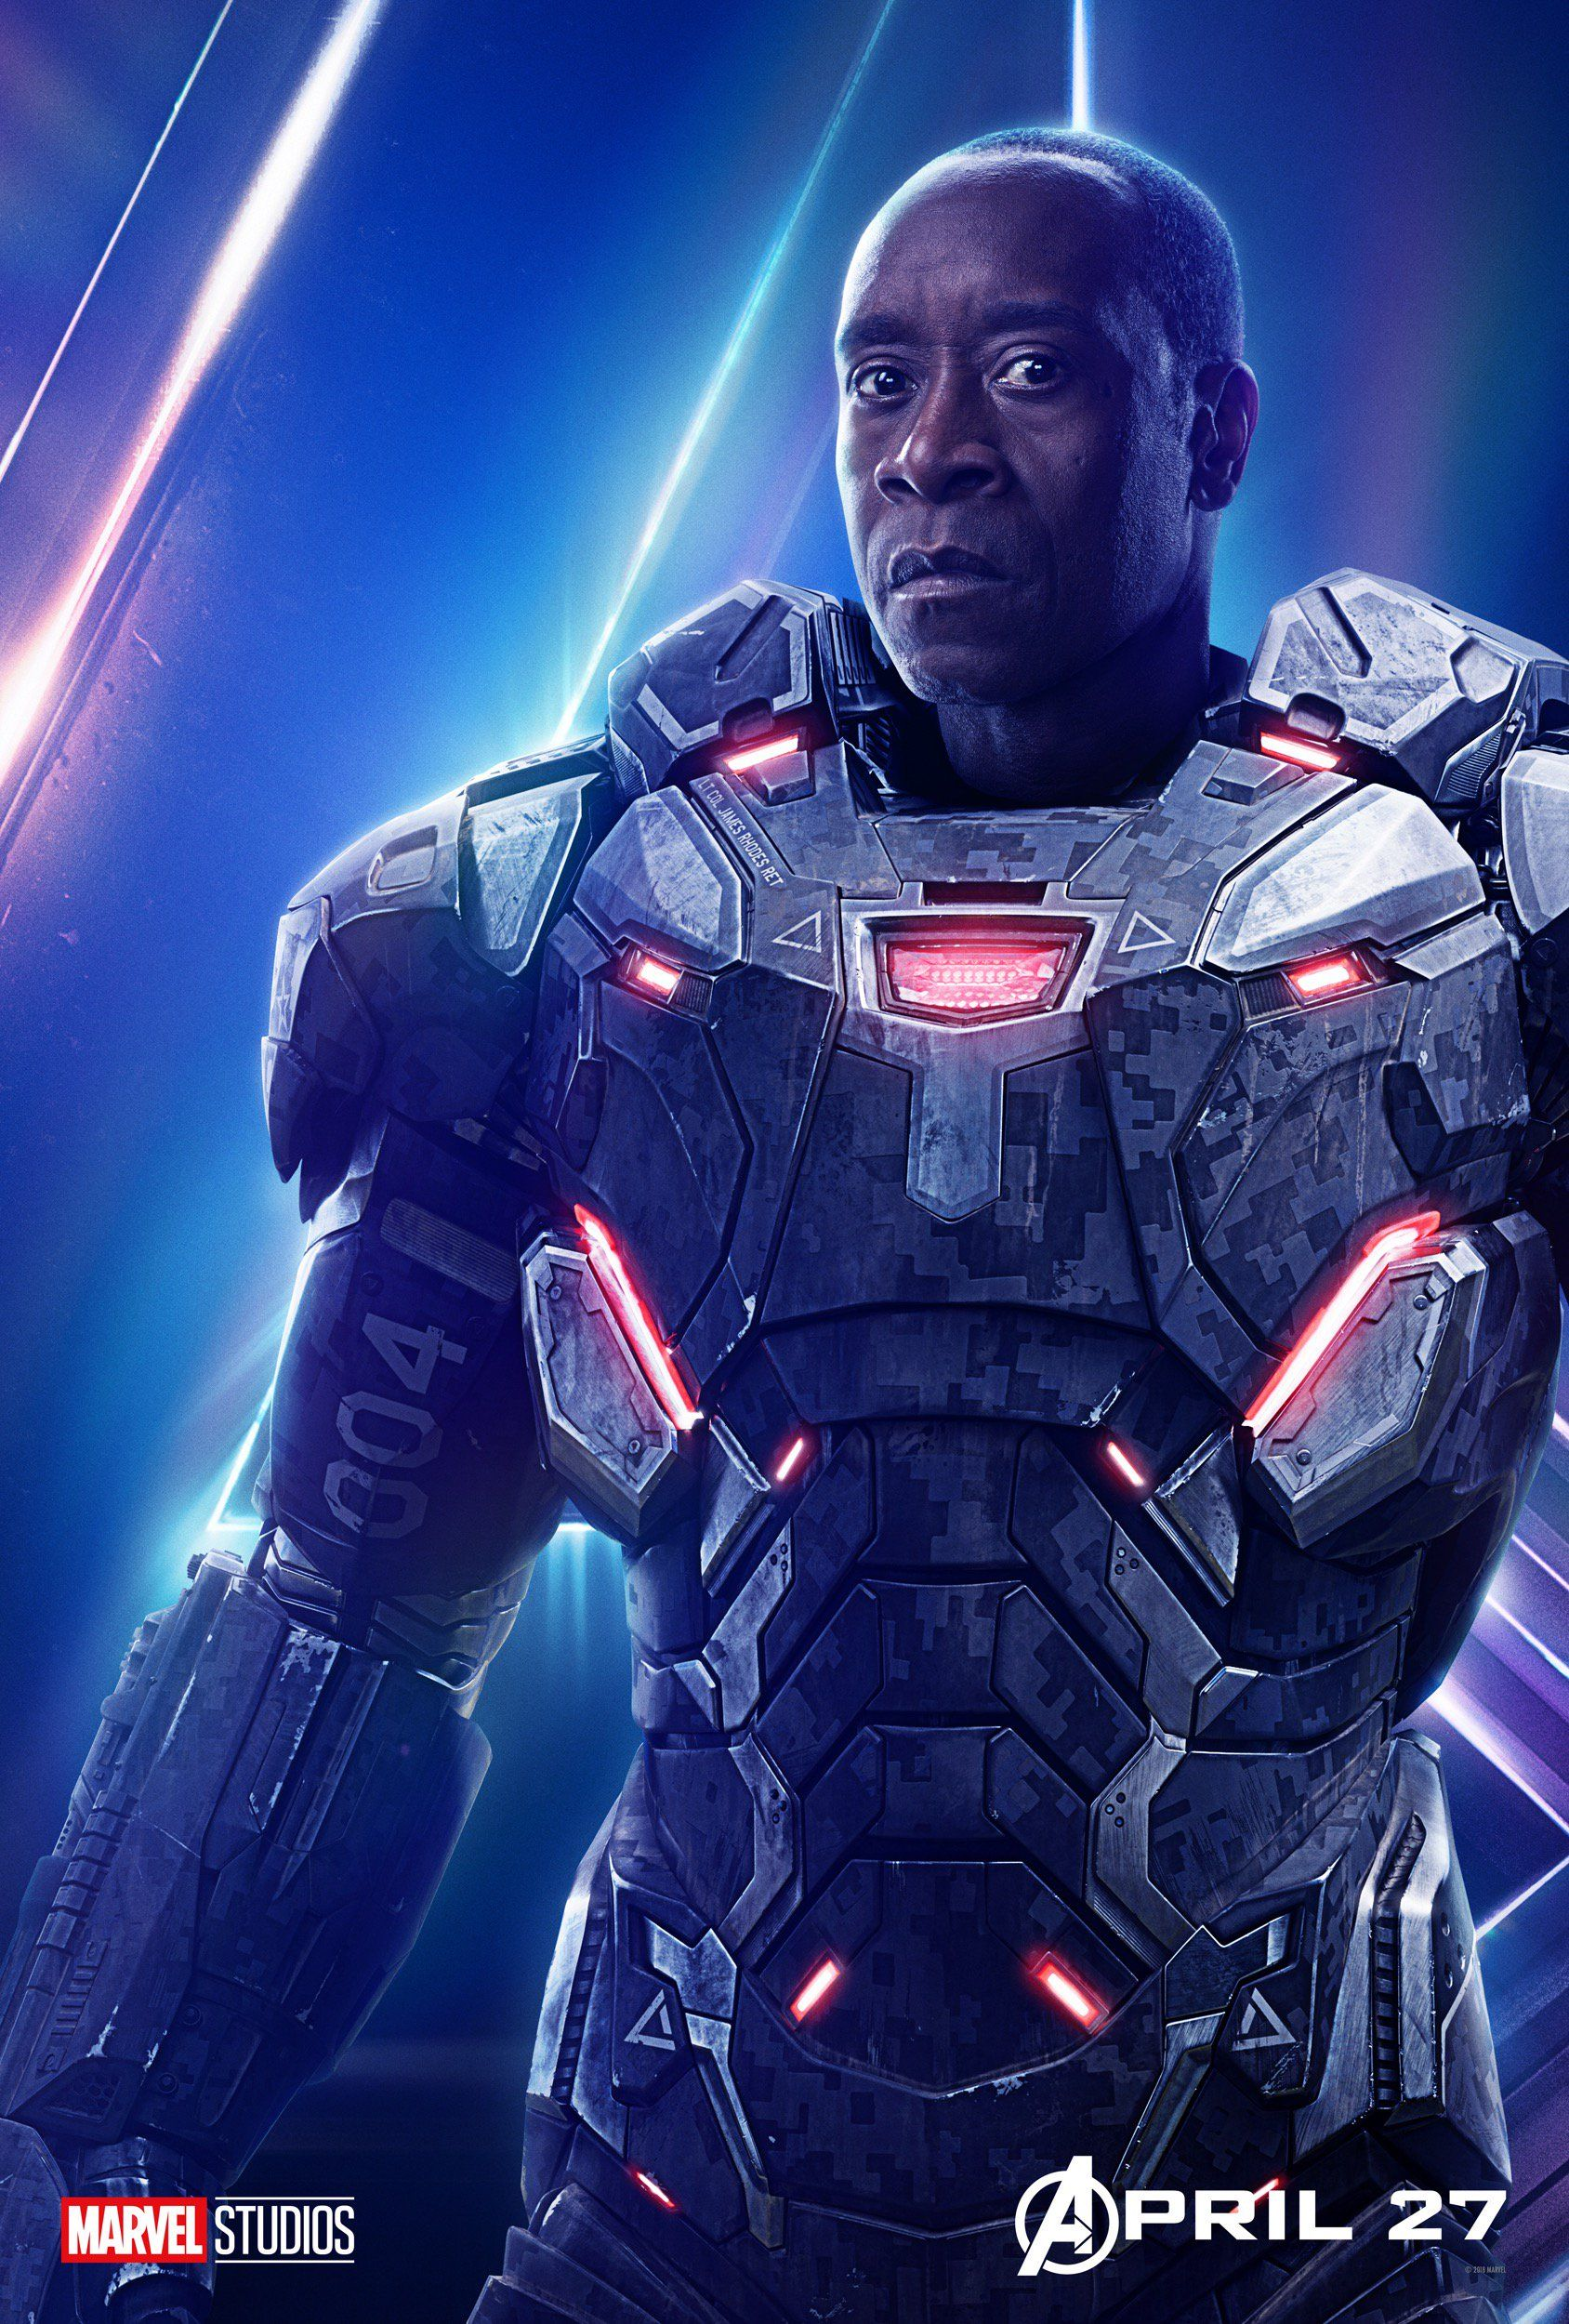 Avengers Infinity War Run Time Character Posters